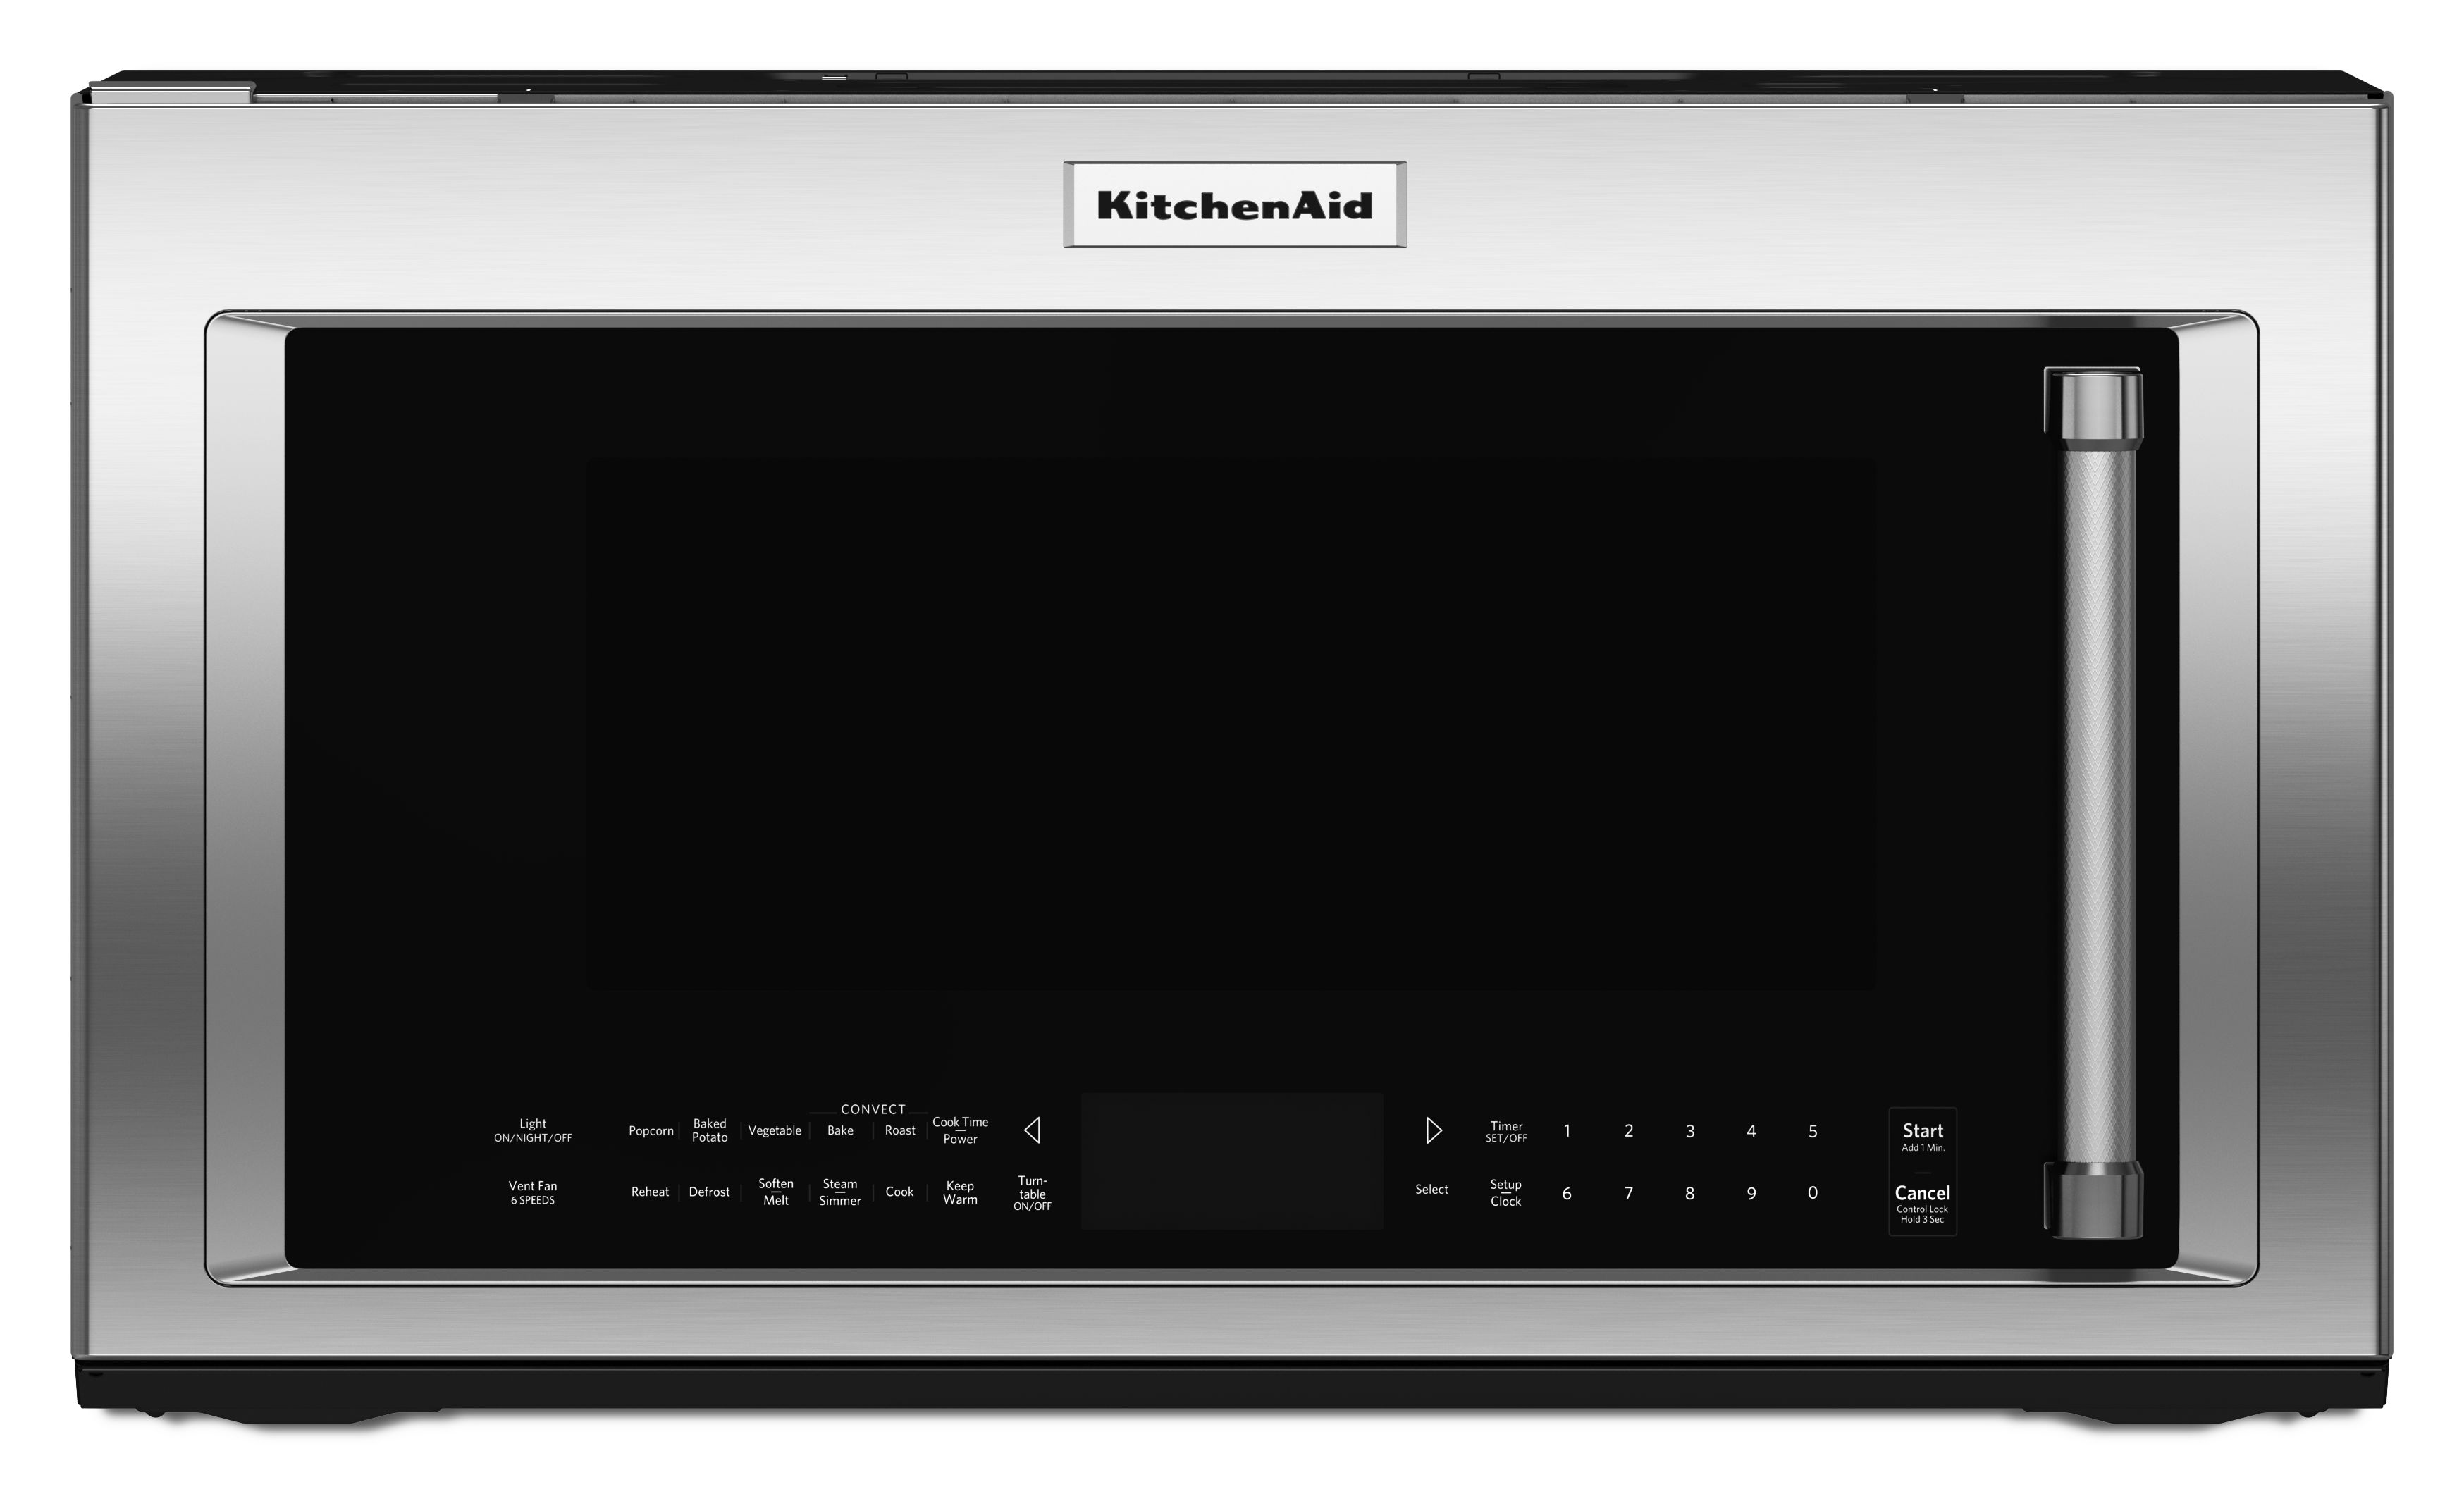 Kitchenaid Over The Range Microwave Stainless Steel Kmhc319ess